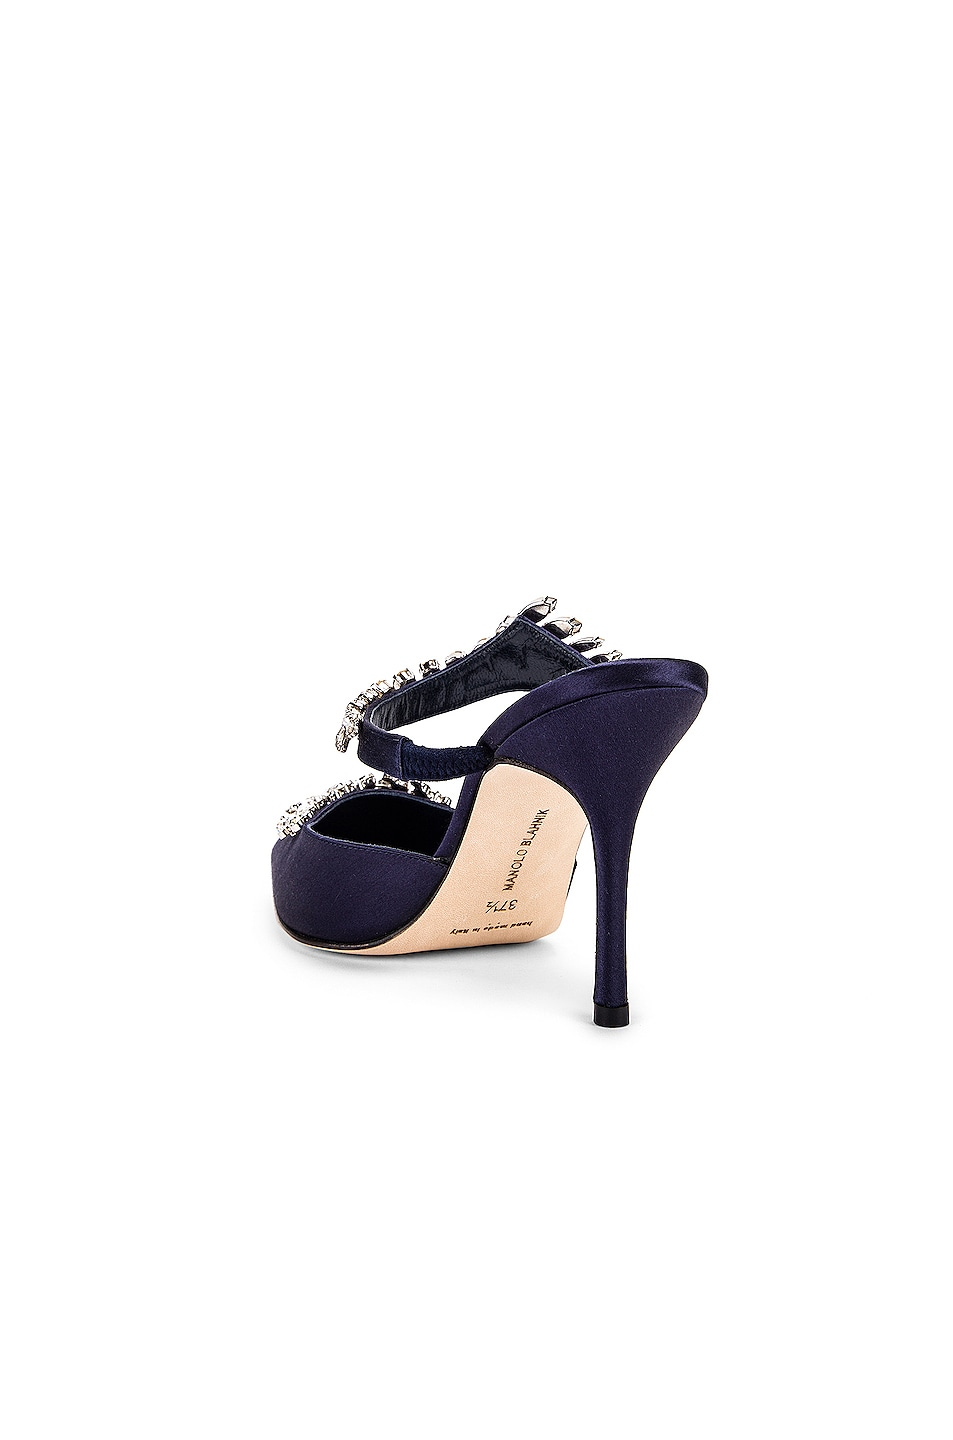 Image 4 of Manolo Blahnik Lurum 90 Mule in Navy Satin